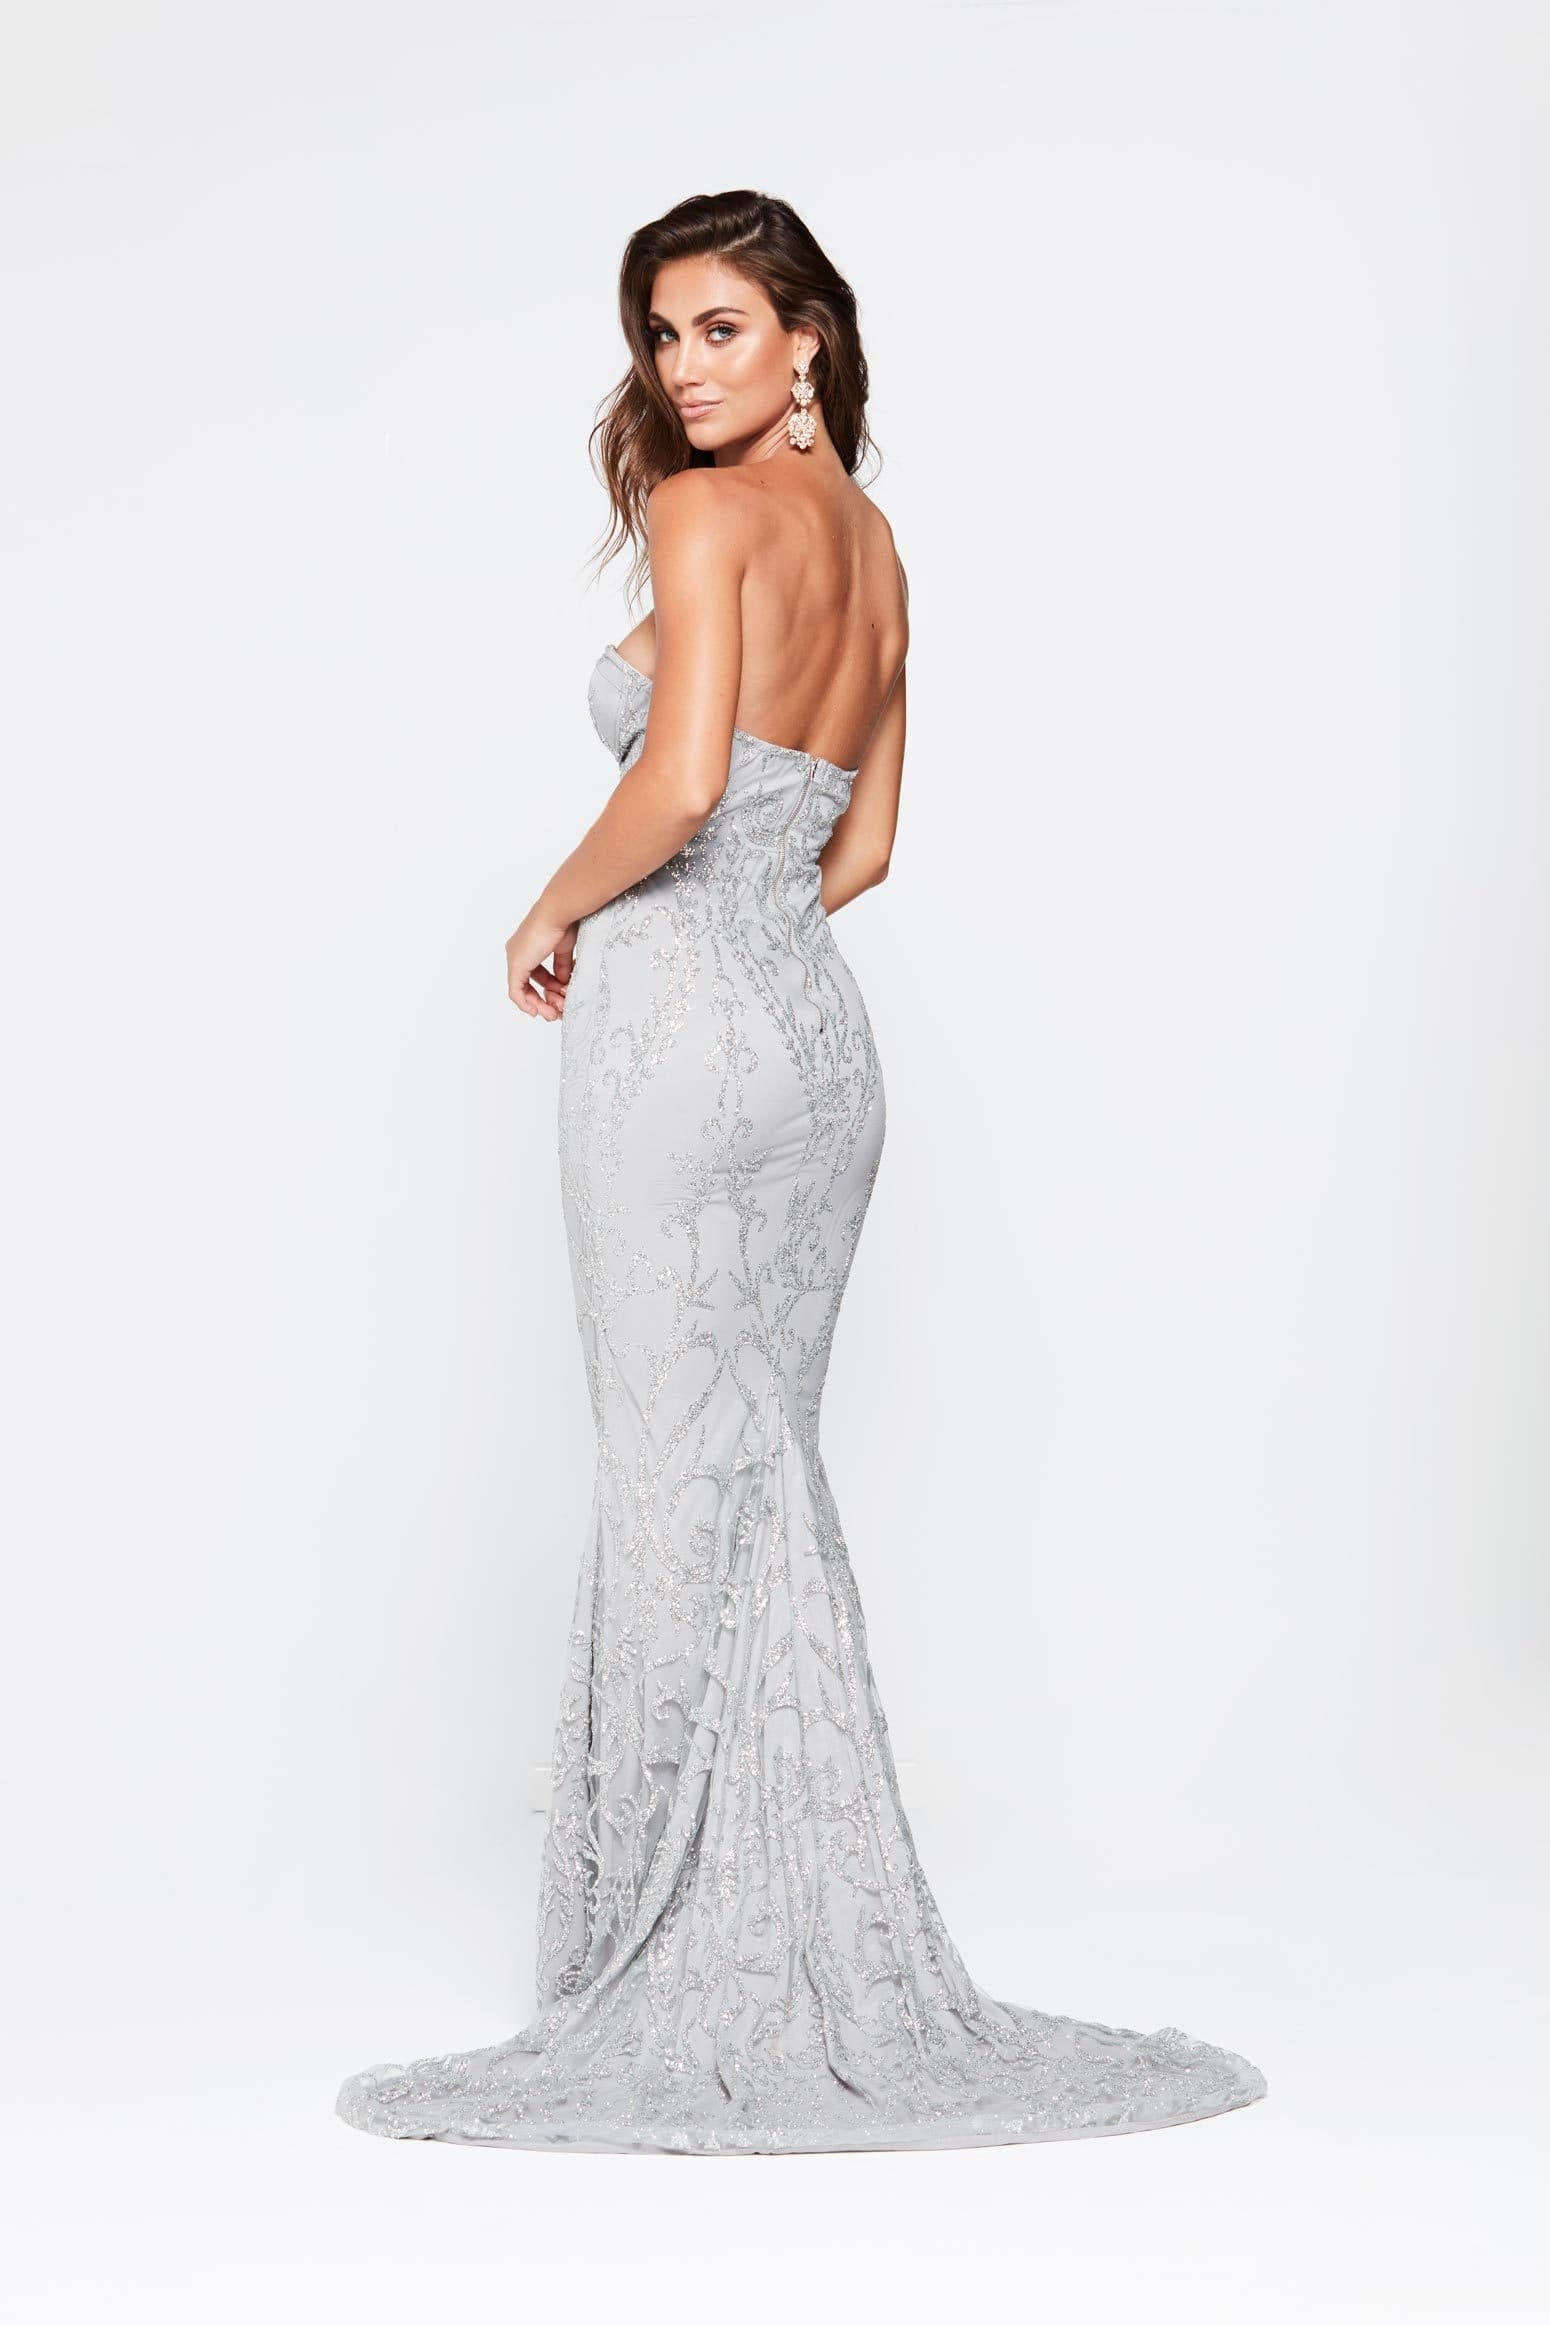 Evita Formal Gown - Silver Glitter Strapless Sheer Mermaid Dress